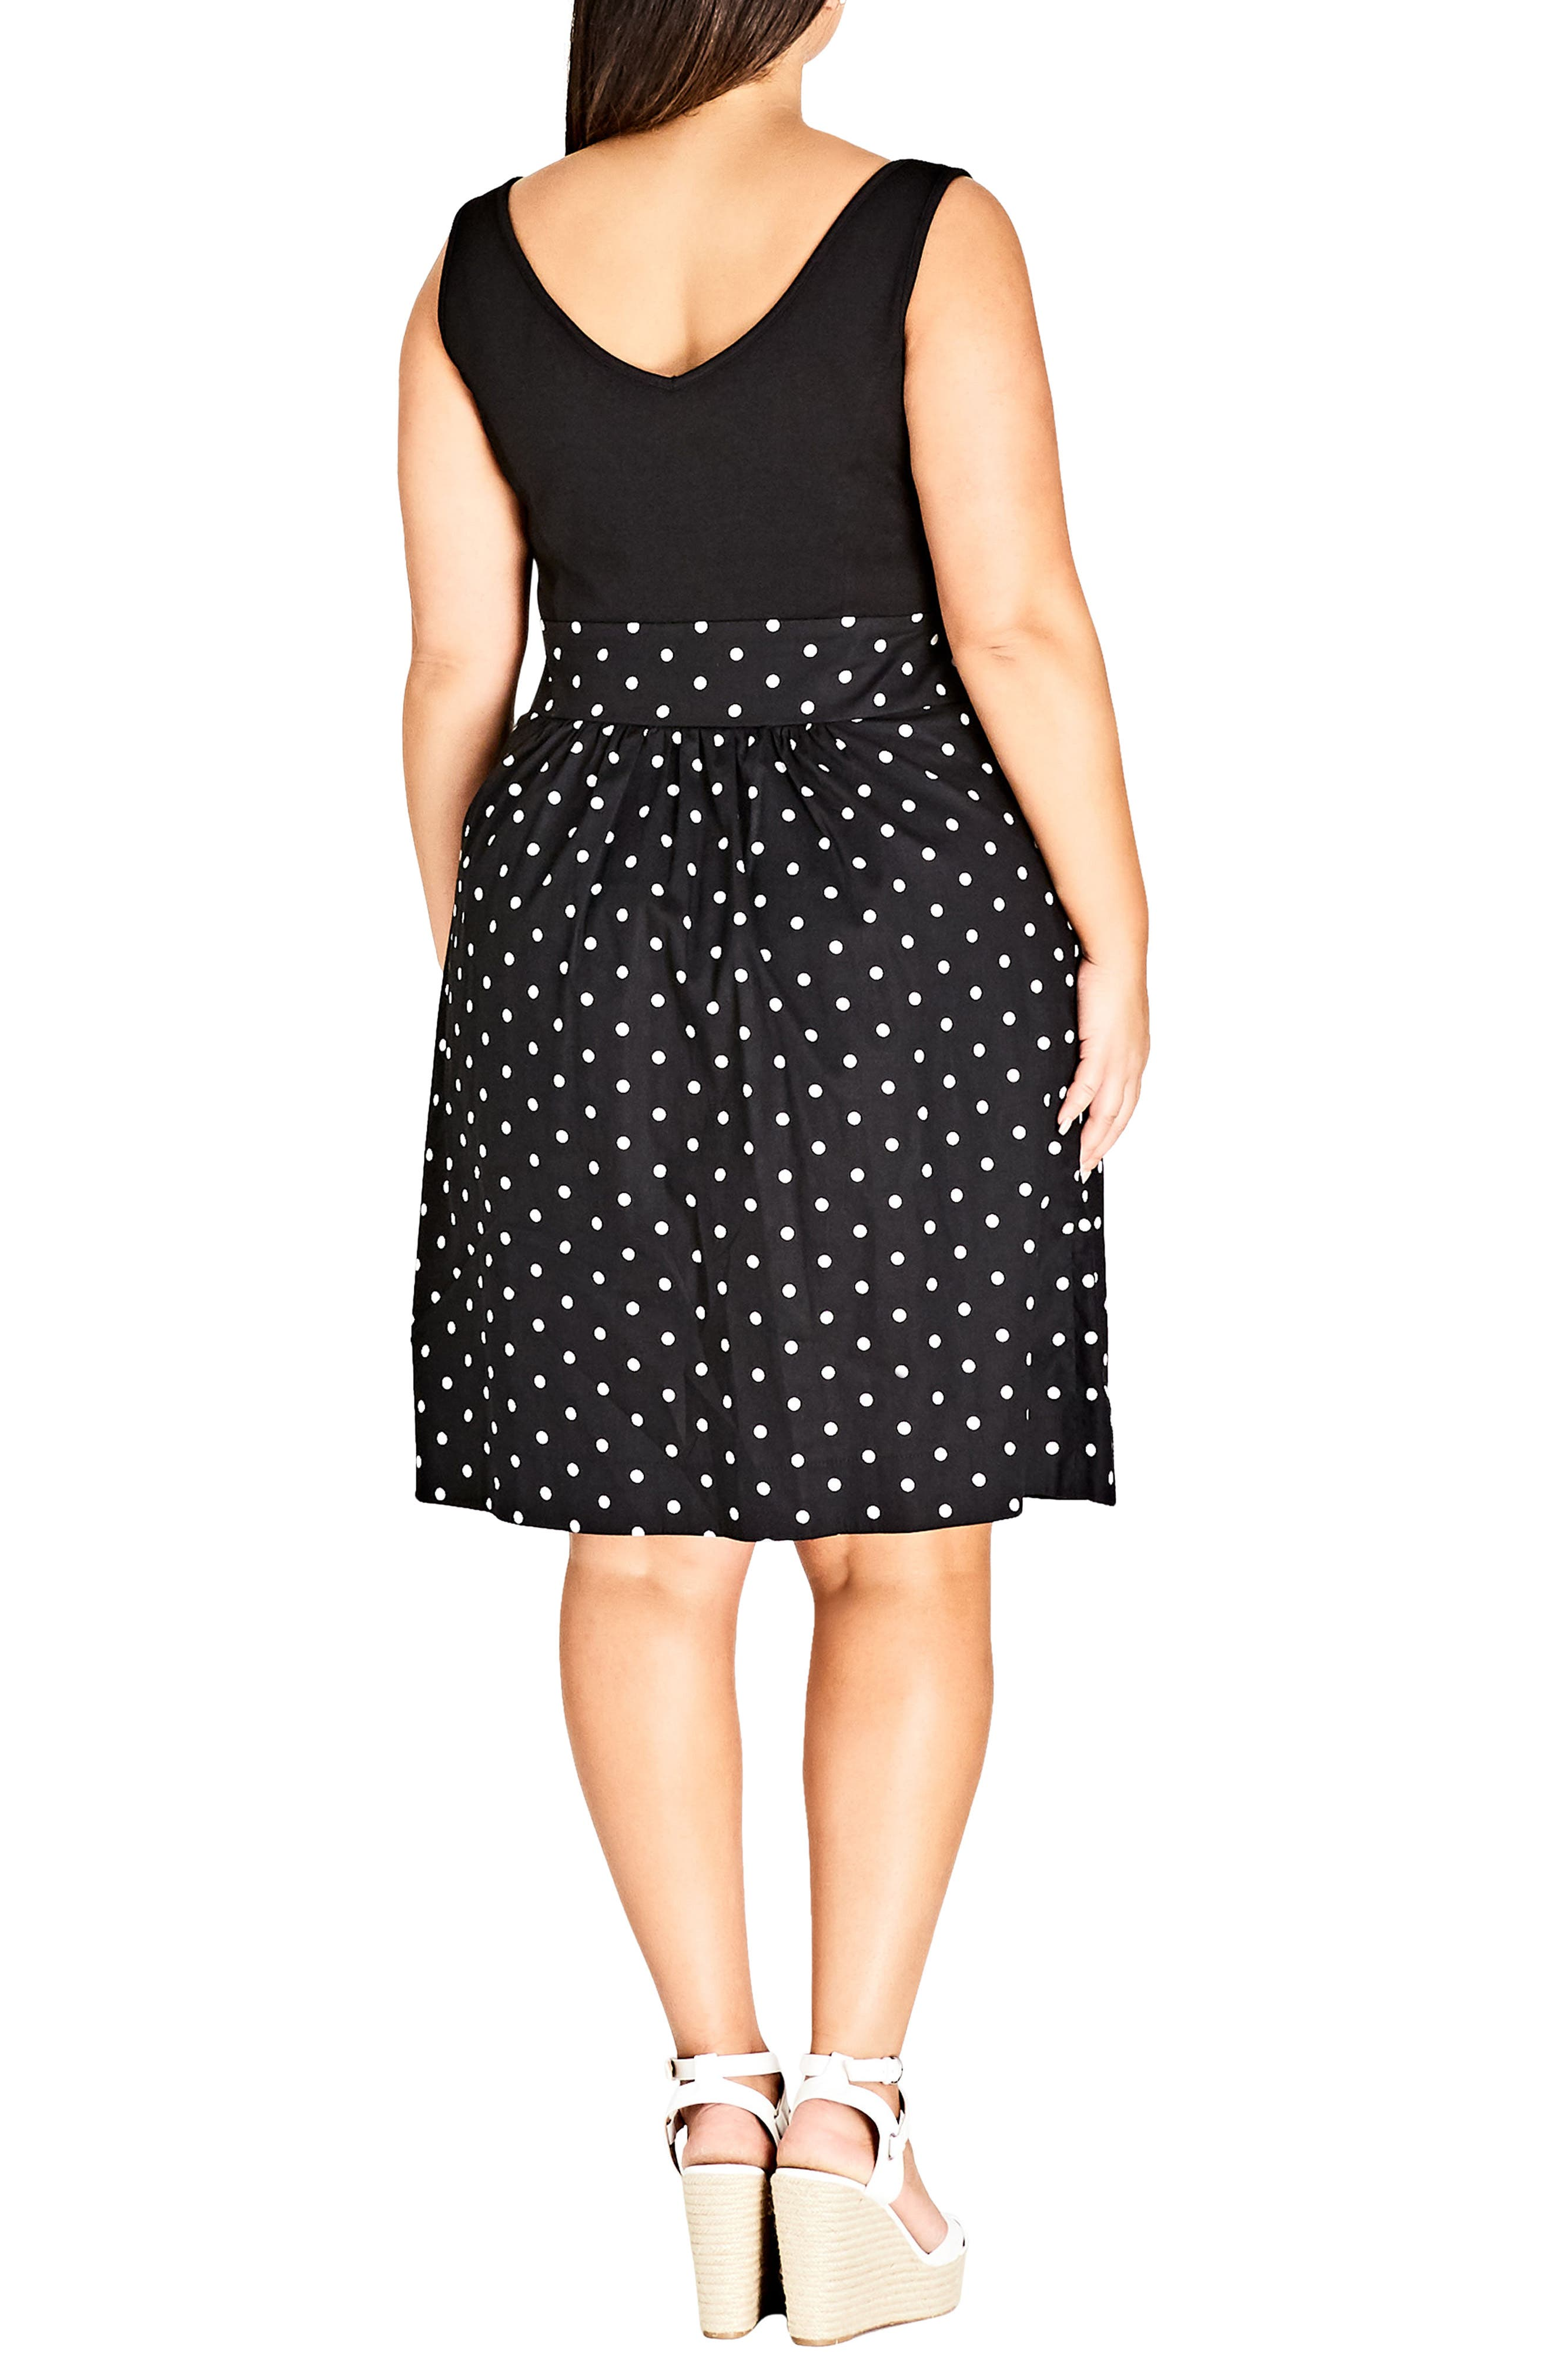 Simply Sweet Fit & Flare Dress,                             Alternate thumbnail 2, color,                             001